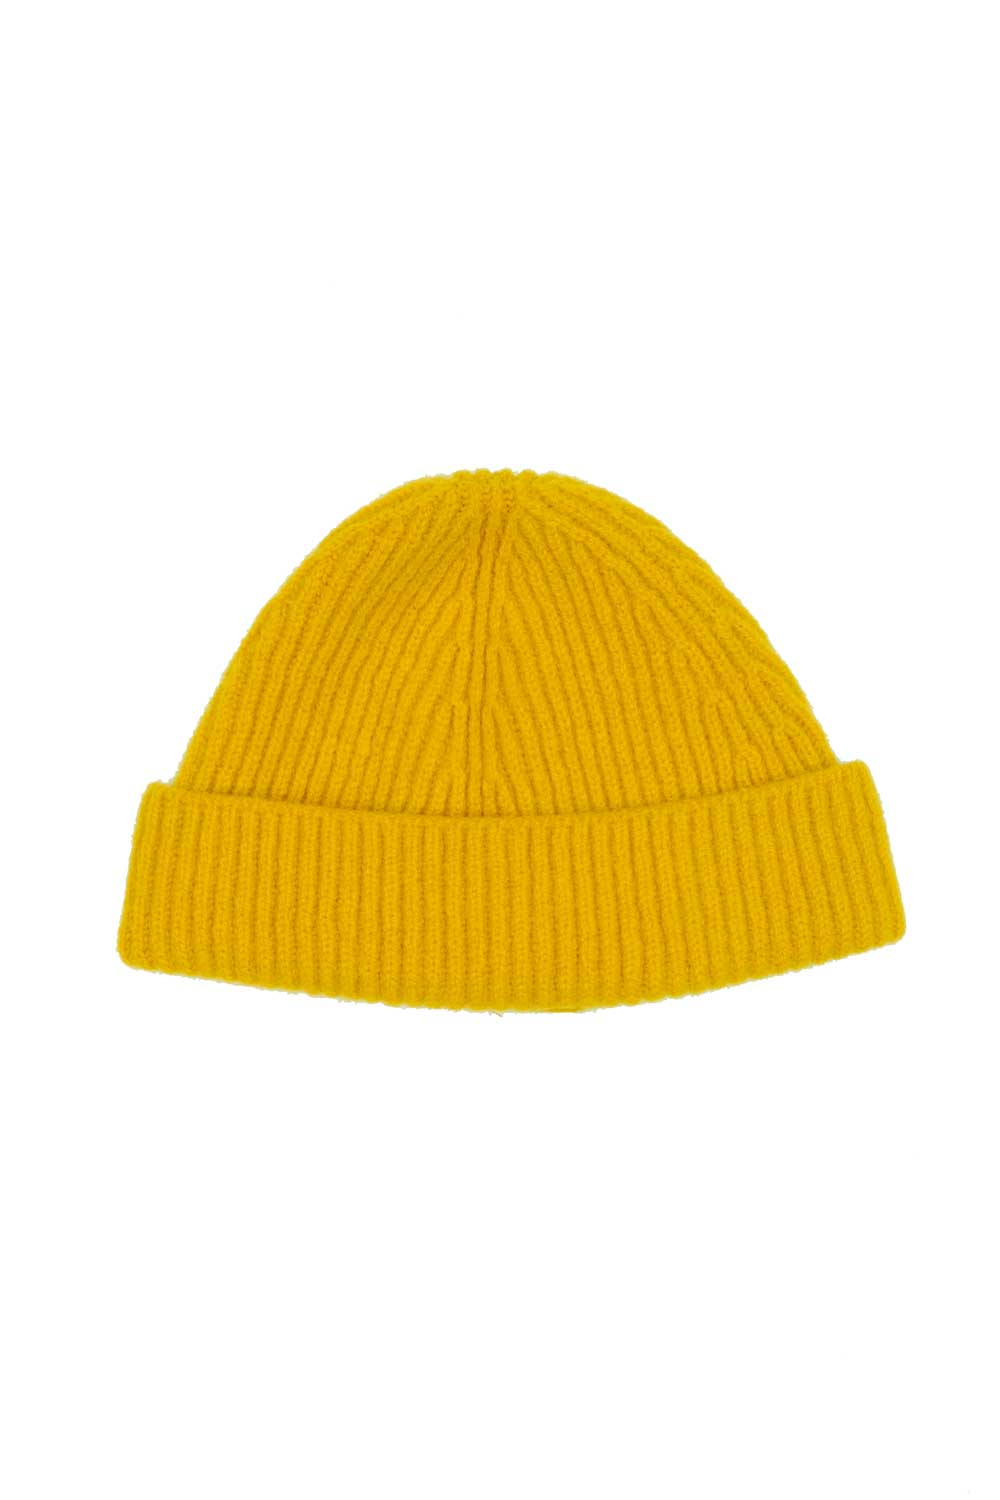 Mustard Yellow Beanie Hat (100% Lambswool) British Made d3650646c56